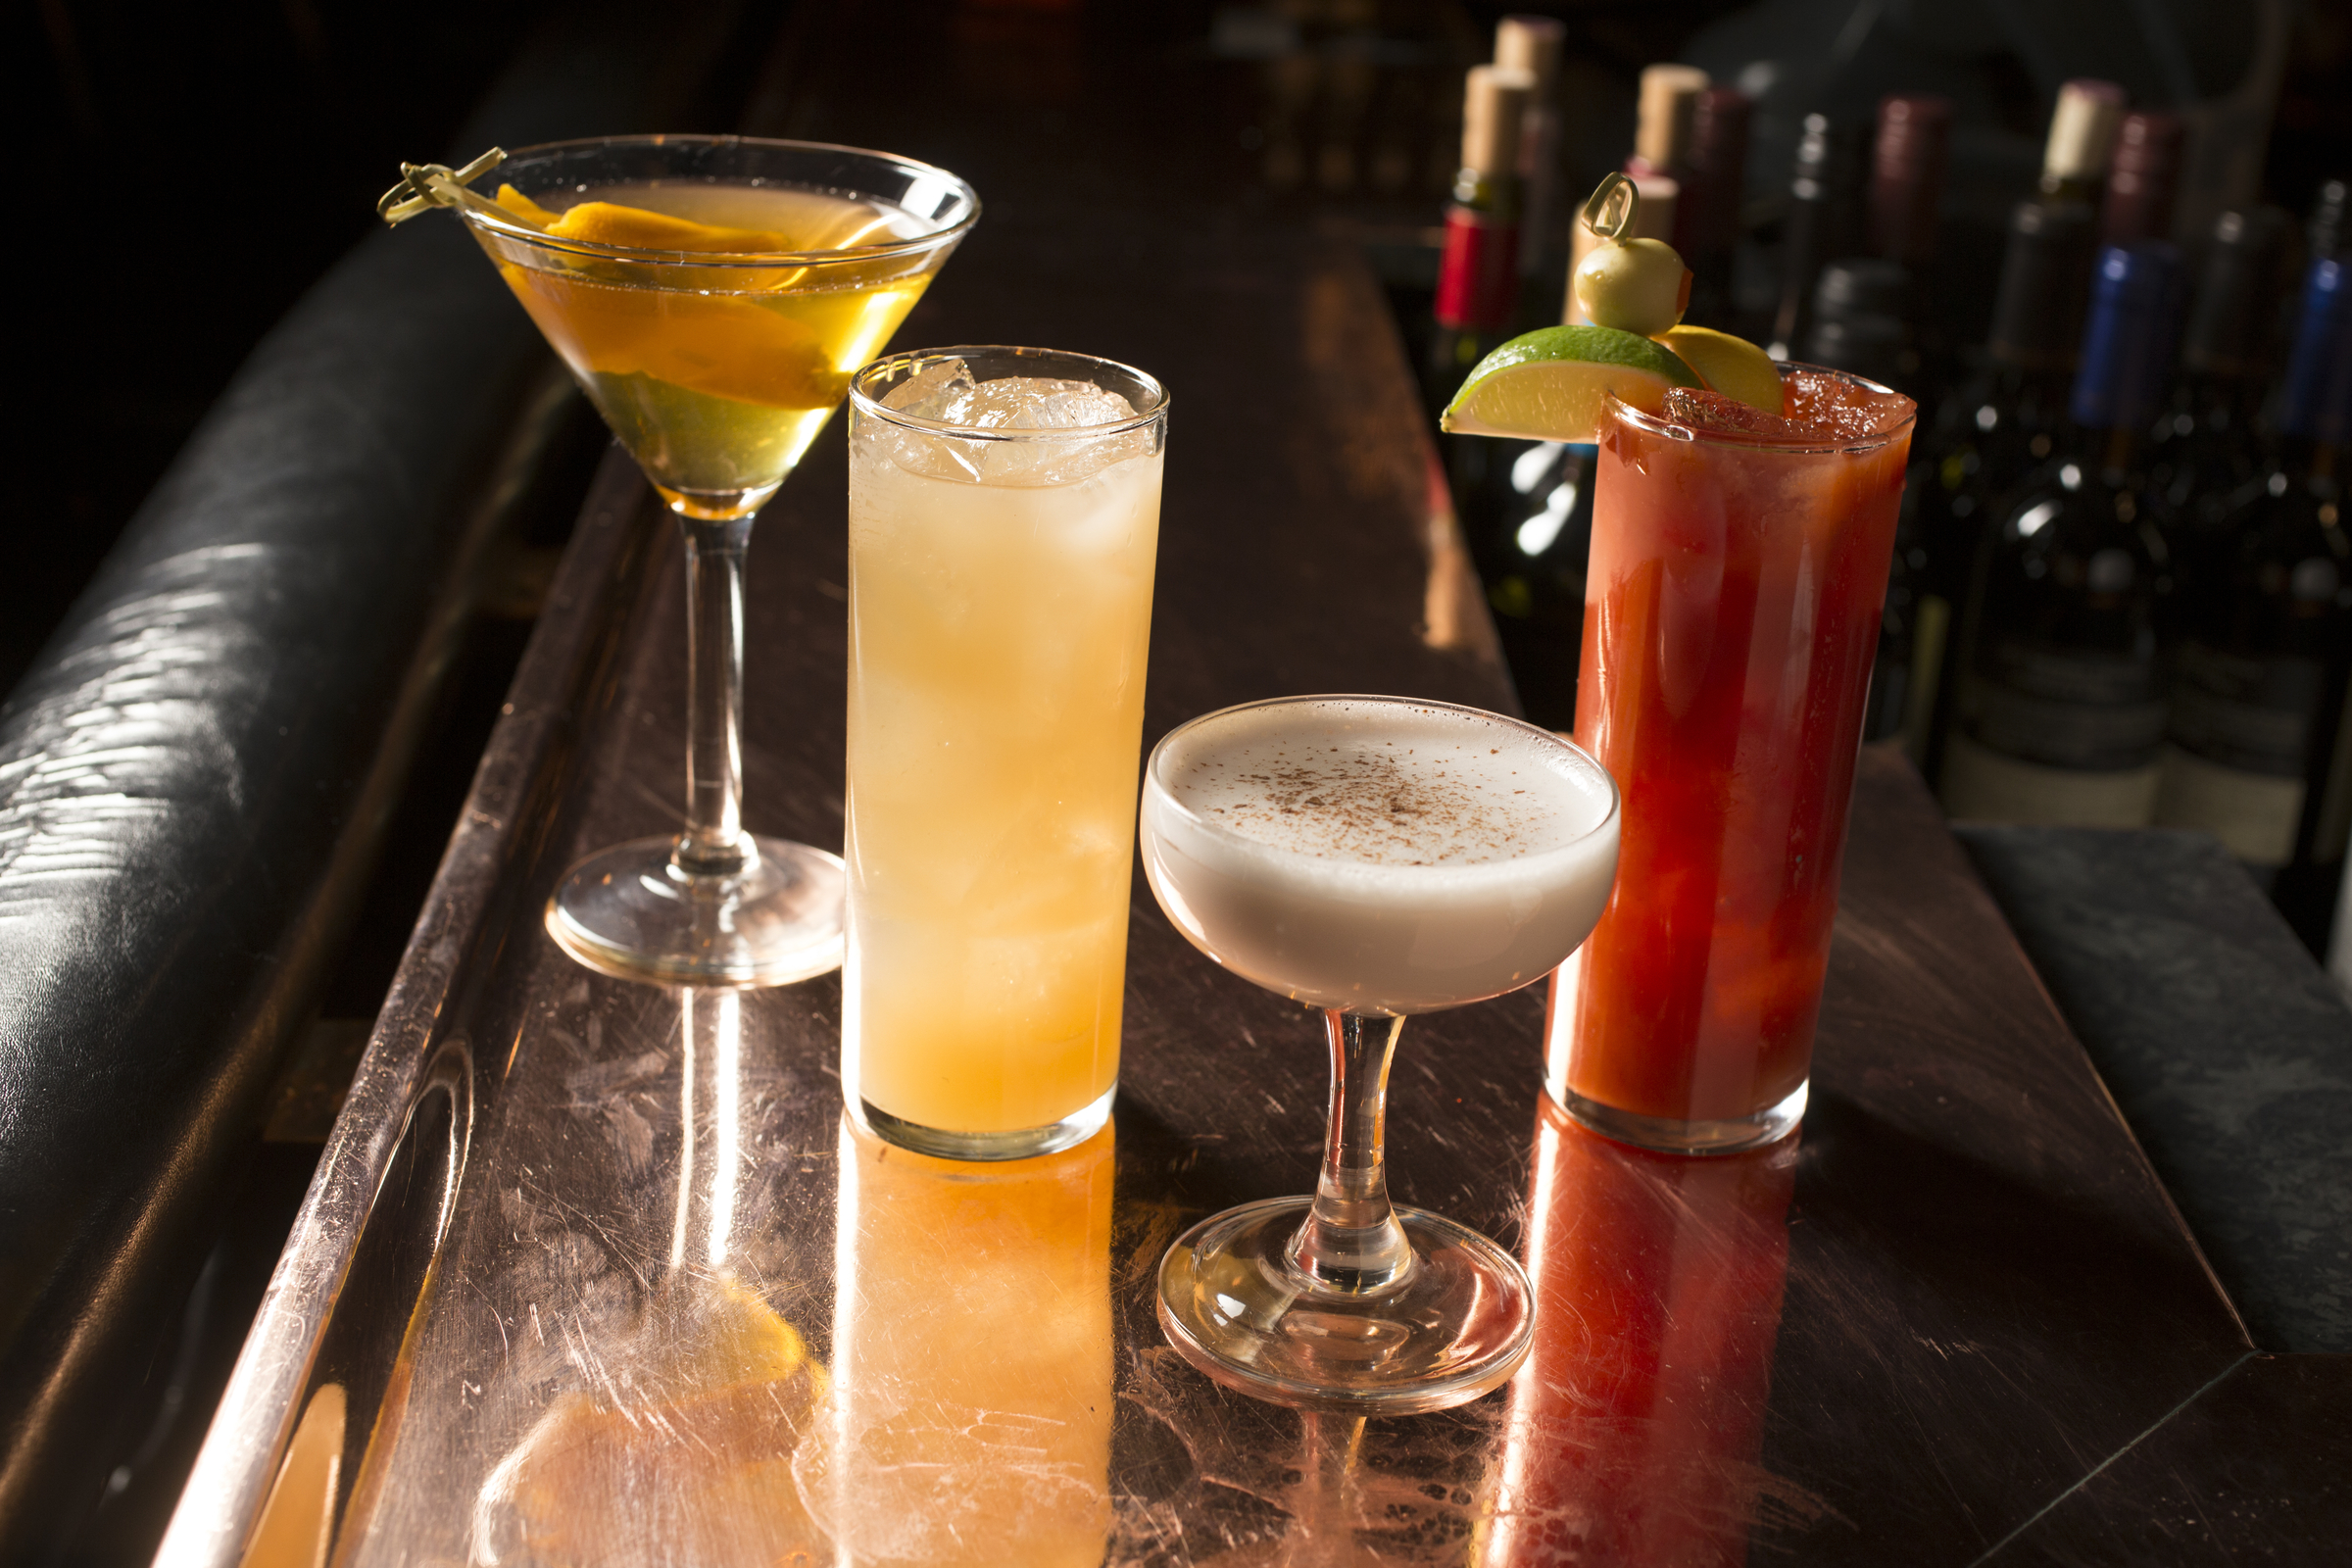 The Top Steakhouse cocktails